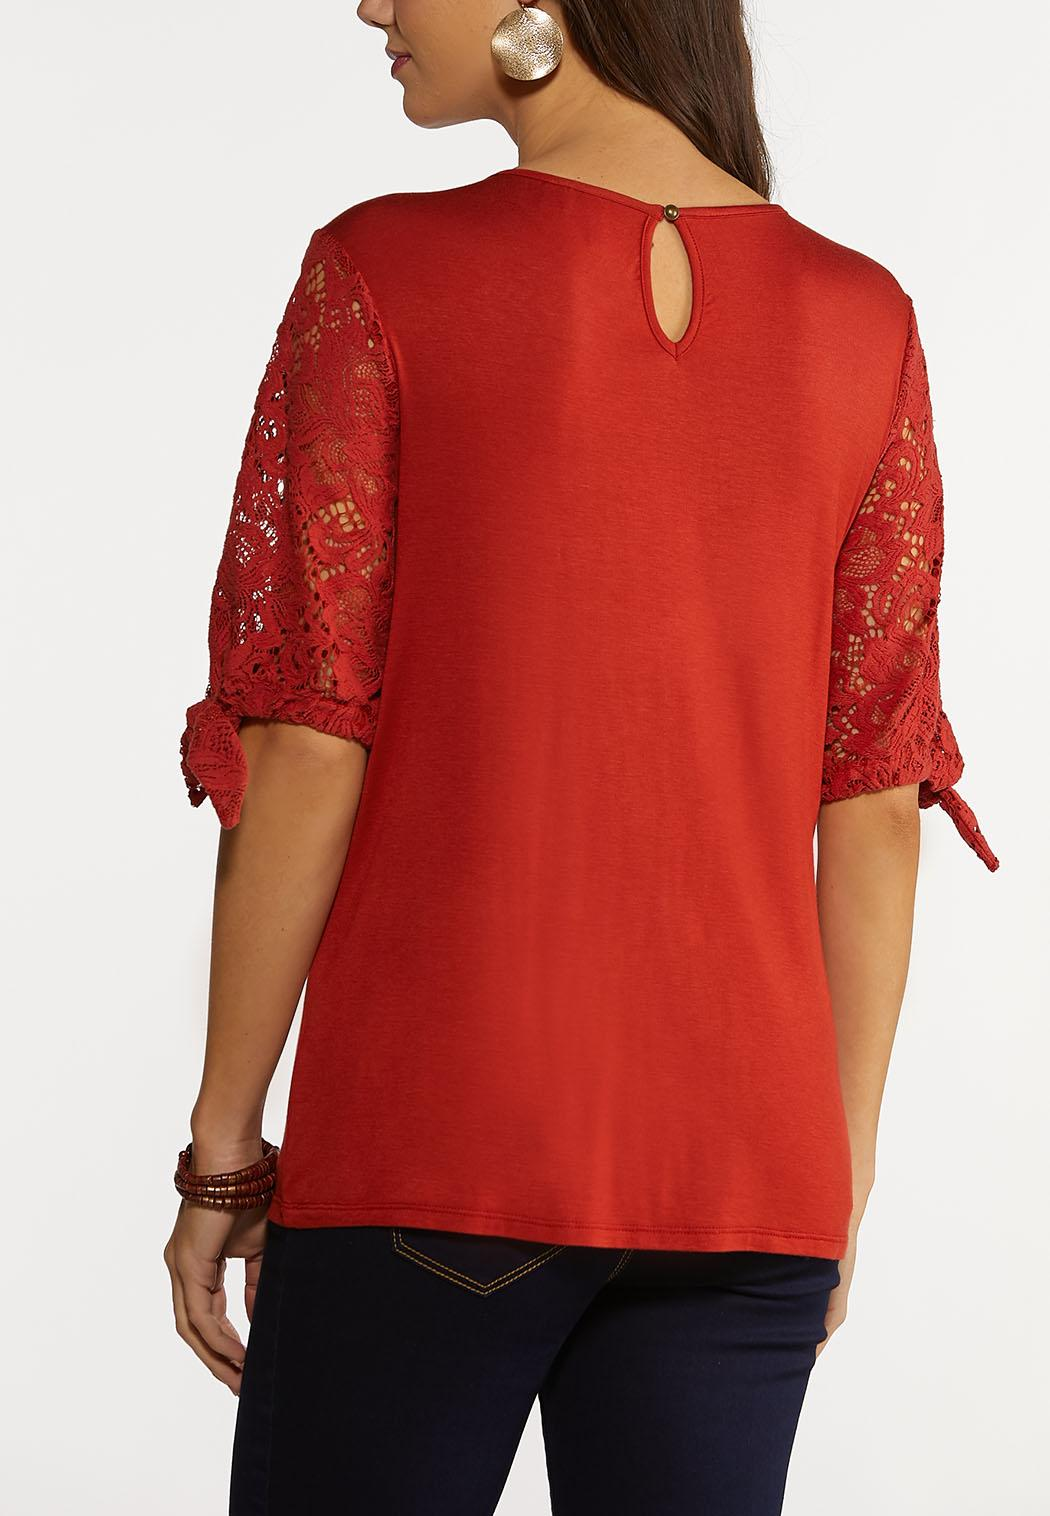 Plus Size Rust Lacey Tie Sleeve Top (Item #44204861)